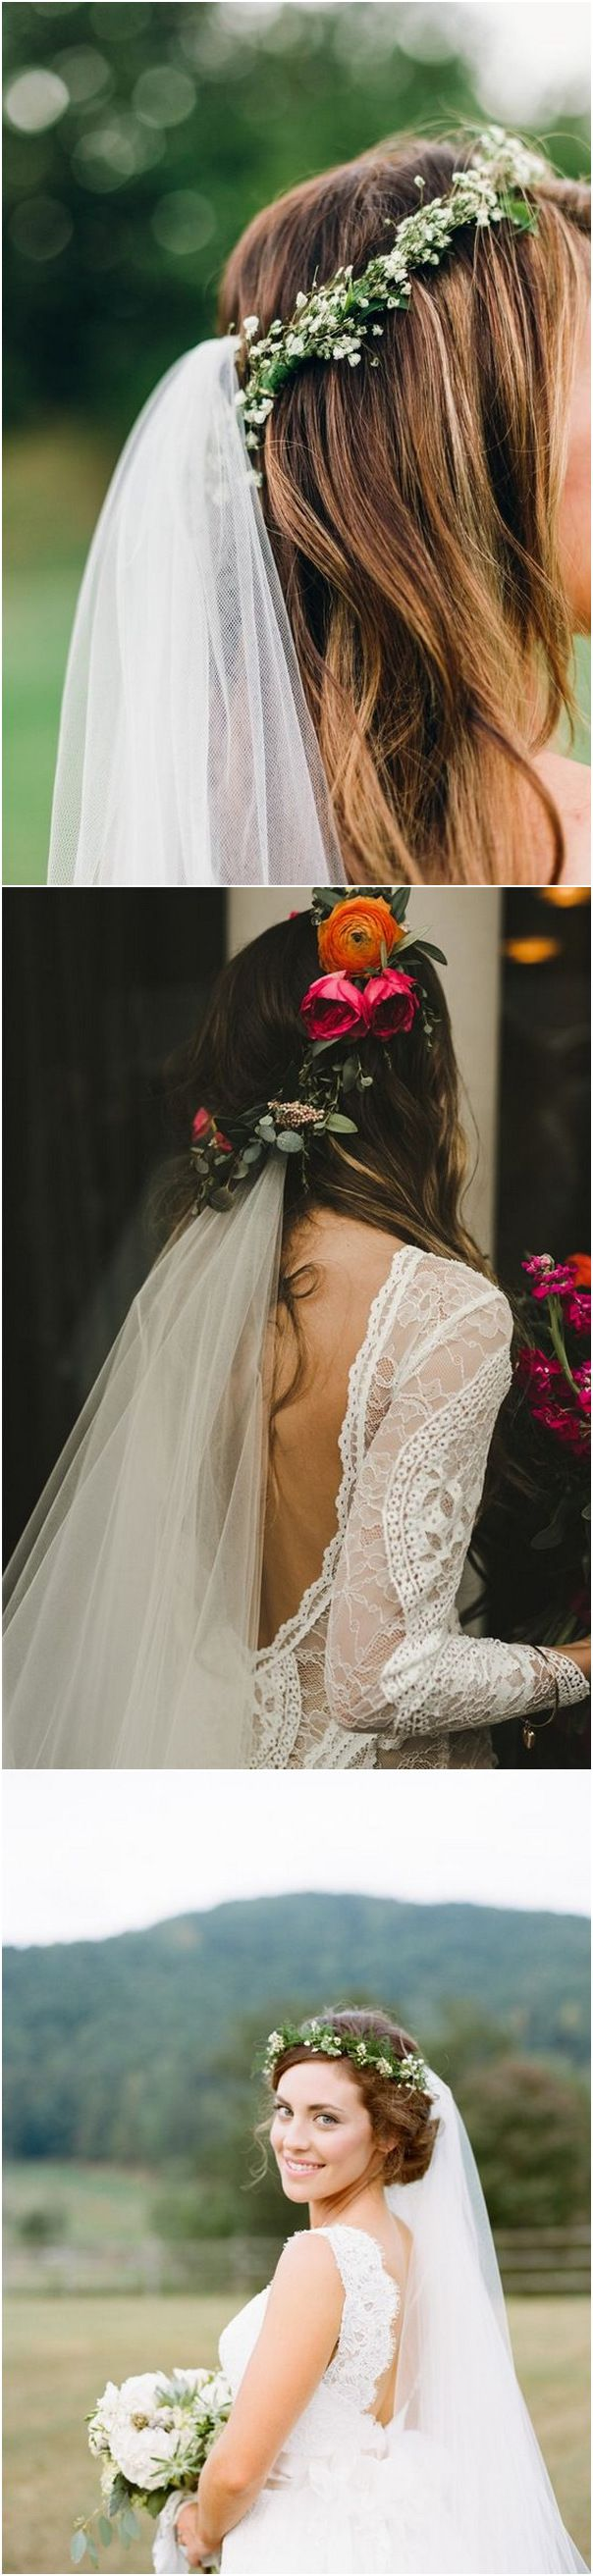 Top 10 wedding hairstyles with flower crown veil for 2018 flower top 10 wedding hairstyles with flower crown veil for 2018 izmirmasajfo